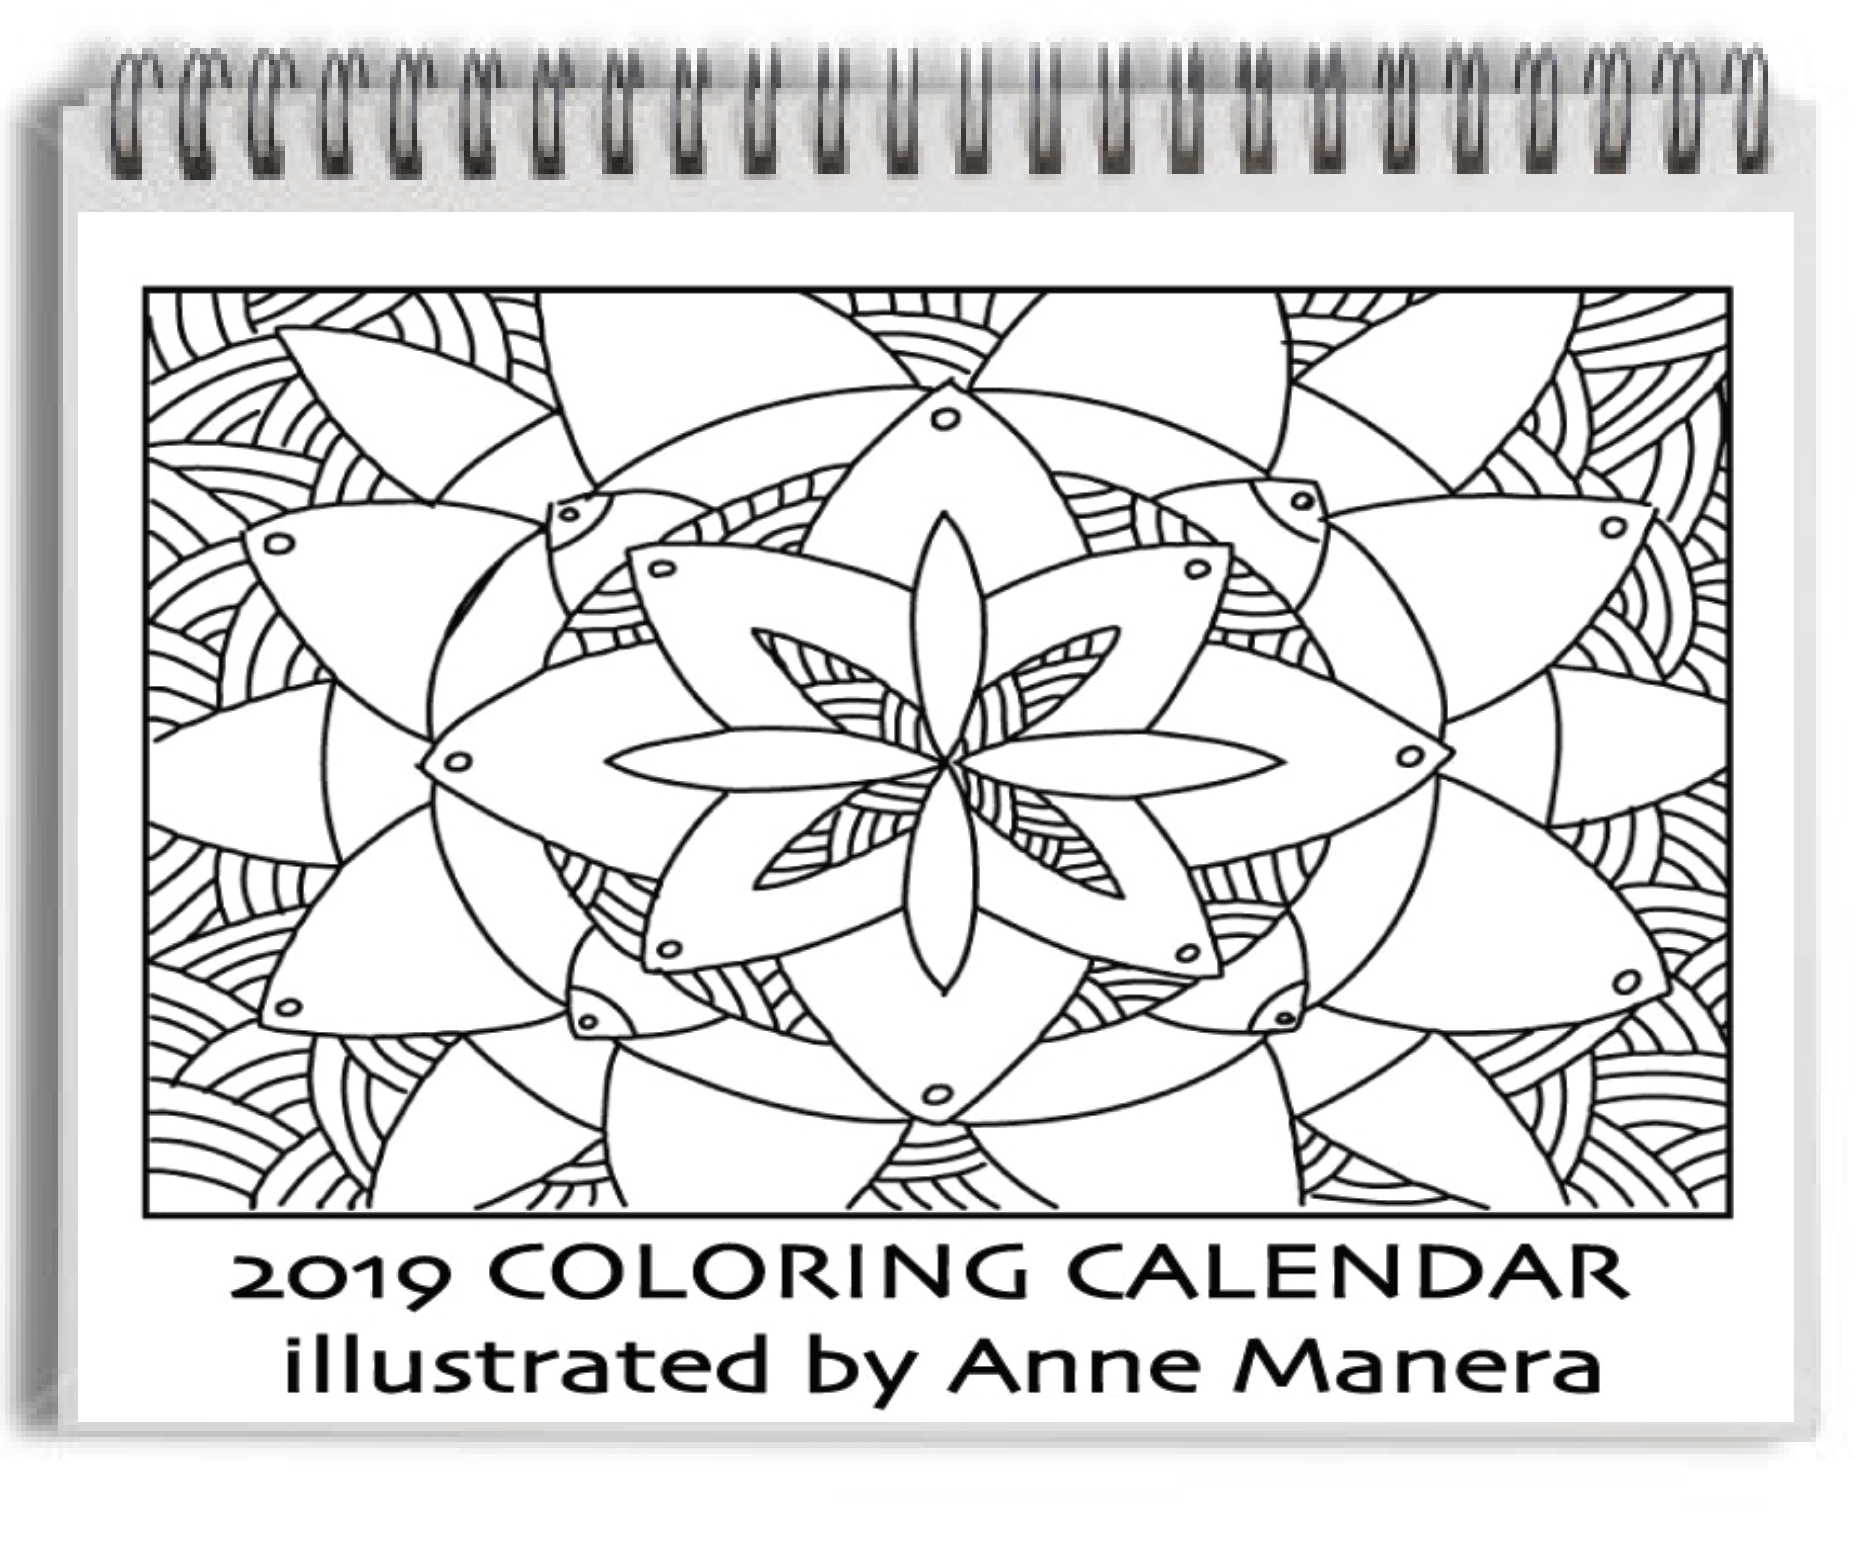 Coloring Calendar For Adults 2019 With 12 Months Illustrations By Anne Manera 8 5 X